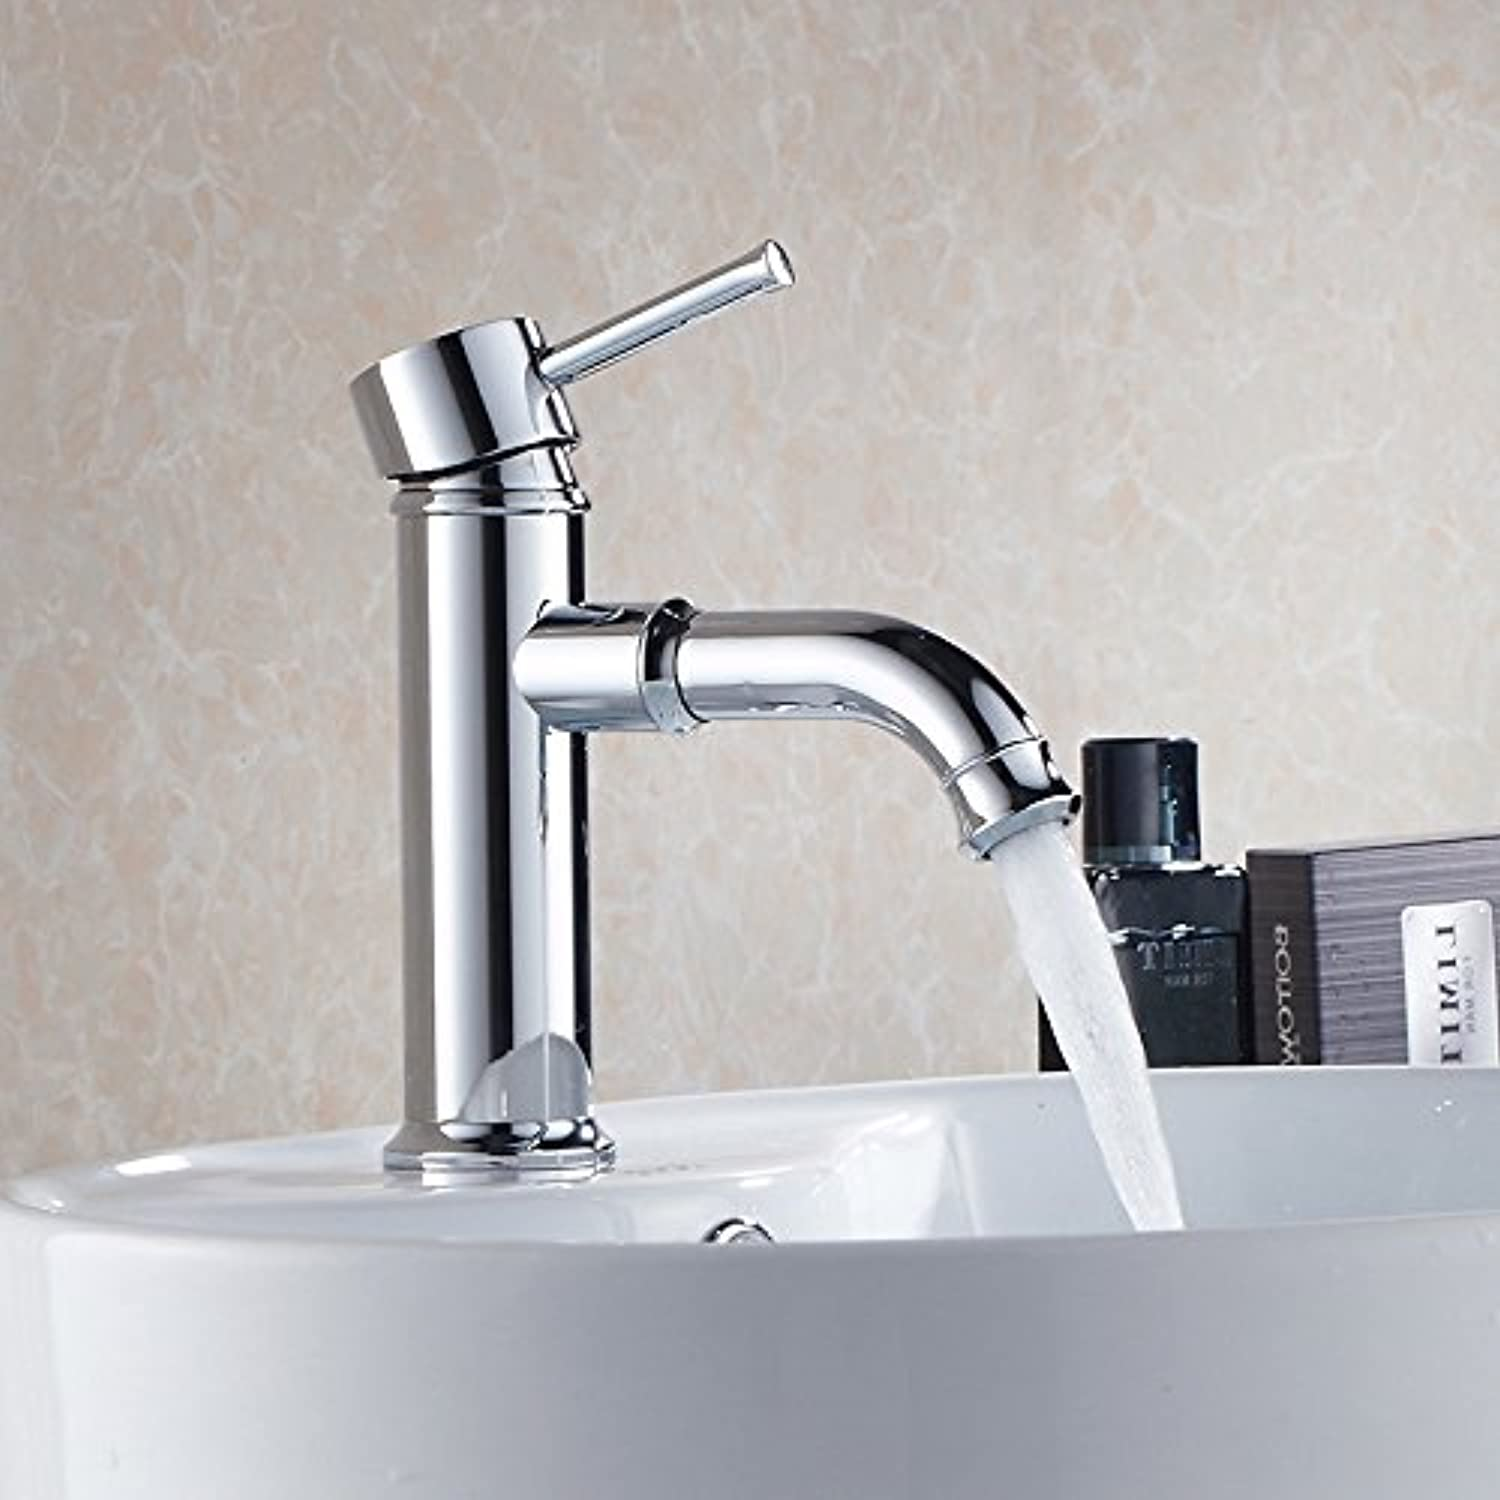 Retro Deluxe Fauceting Modern Style Free Shipping Basin Faucet Cold and Hot Water Mixer Single Handle  MD1A9013A,Brass,MD1A901A4